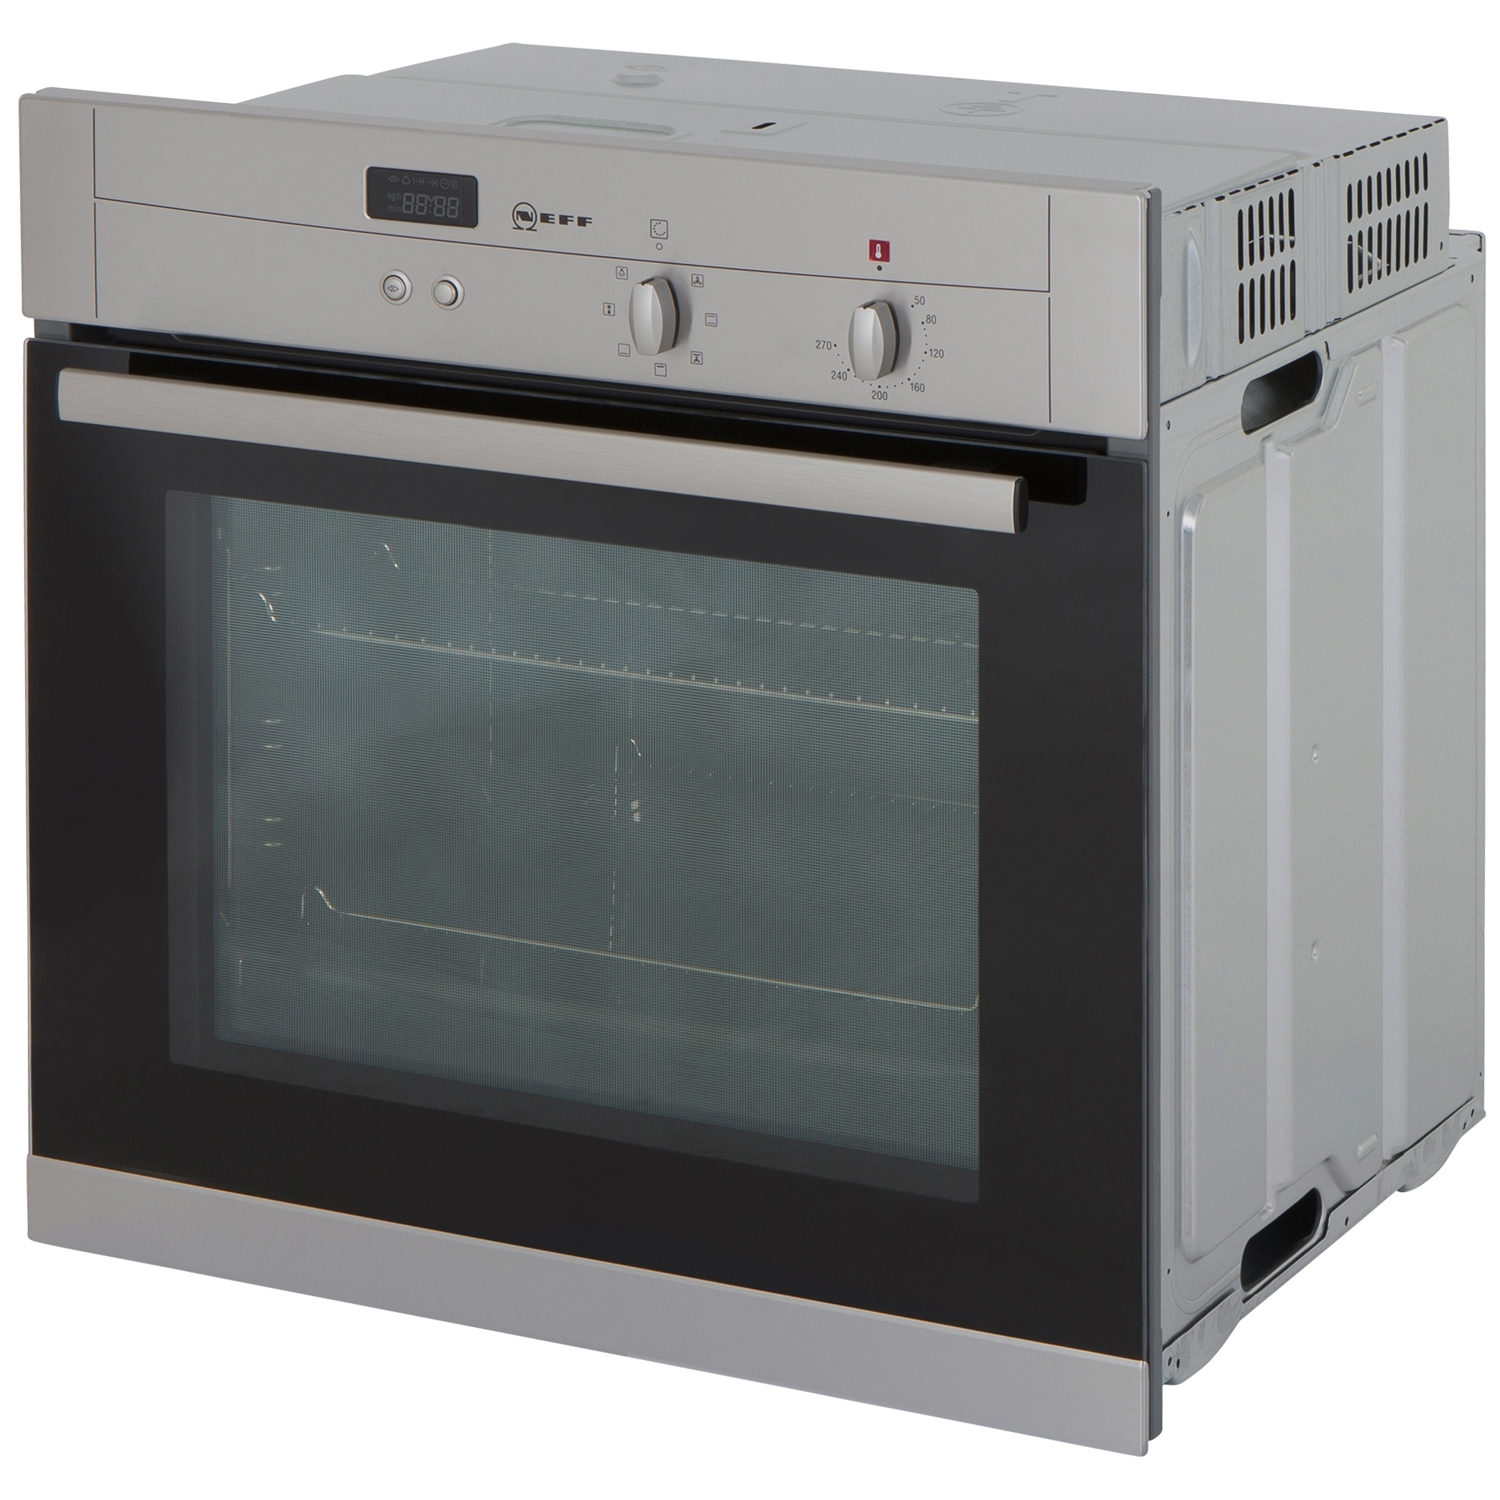 NEFF Built In Single Electric Oven - 5